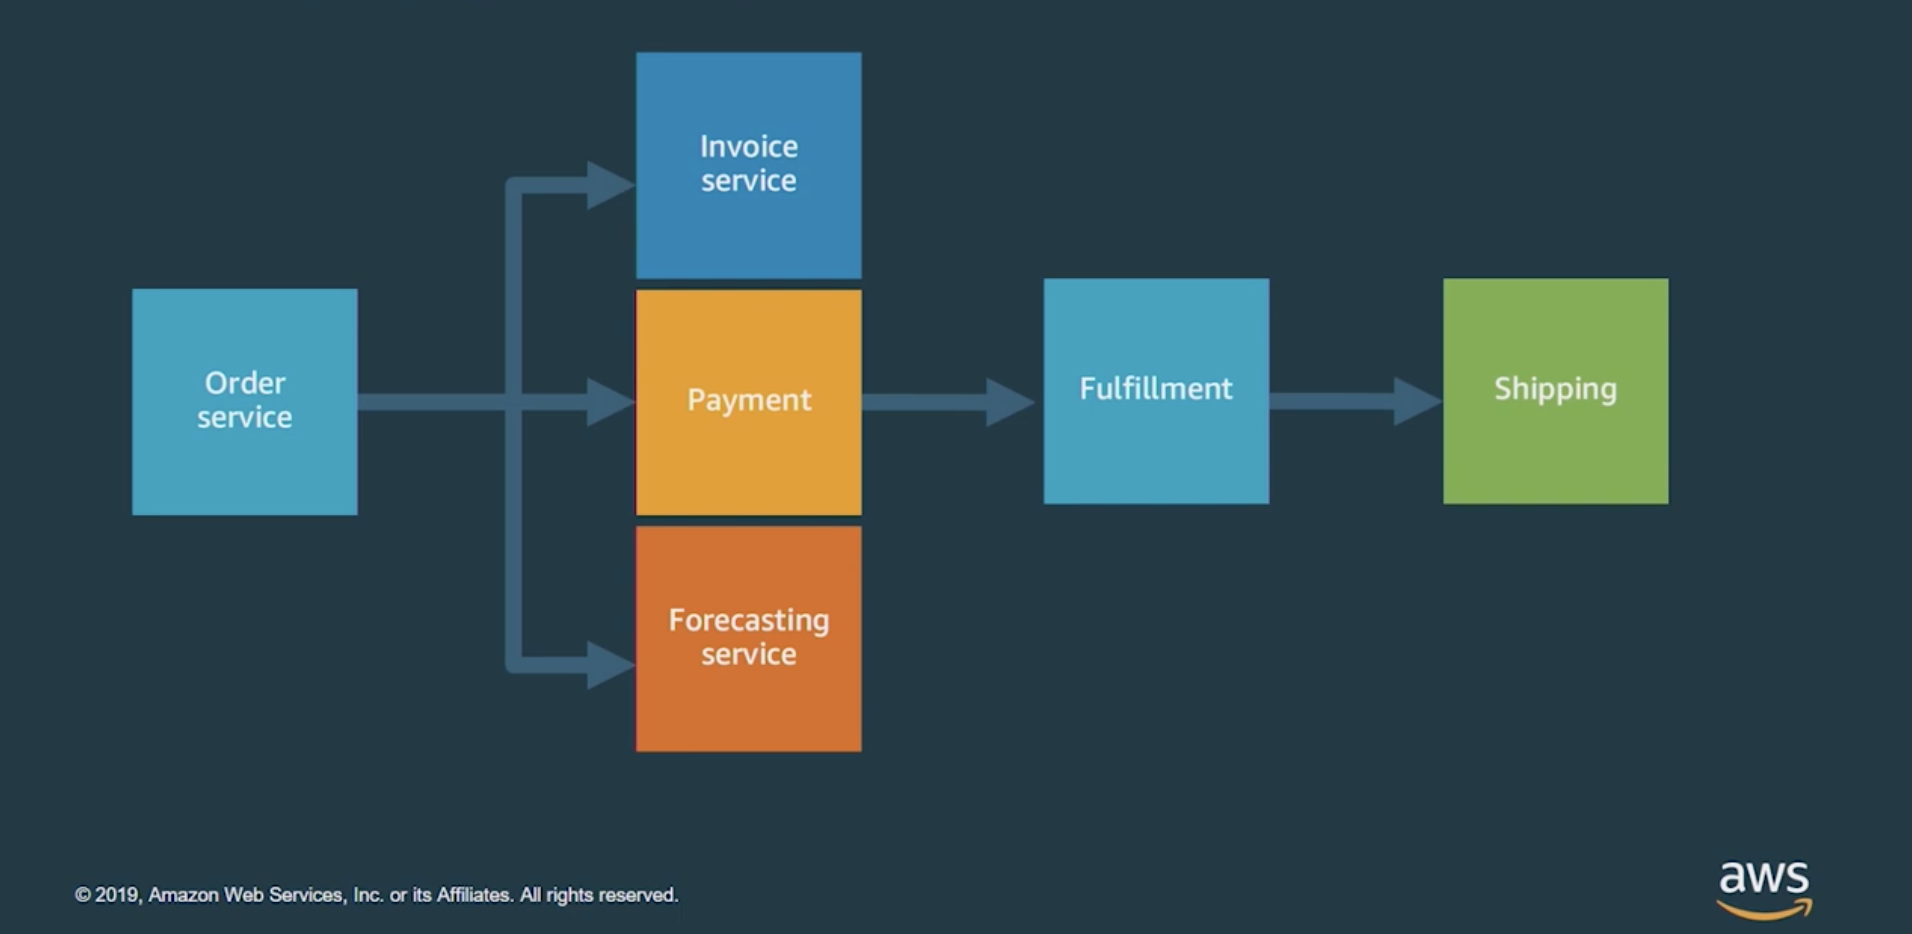 Typical commerce application service architecture